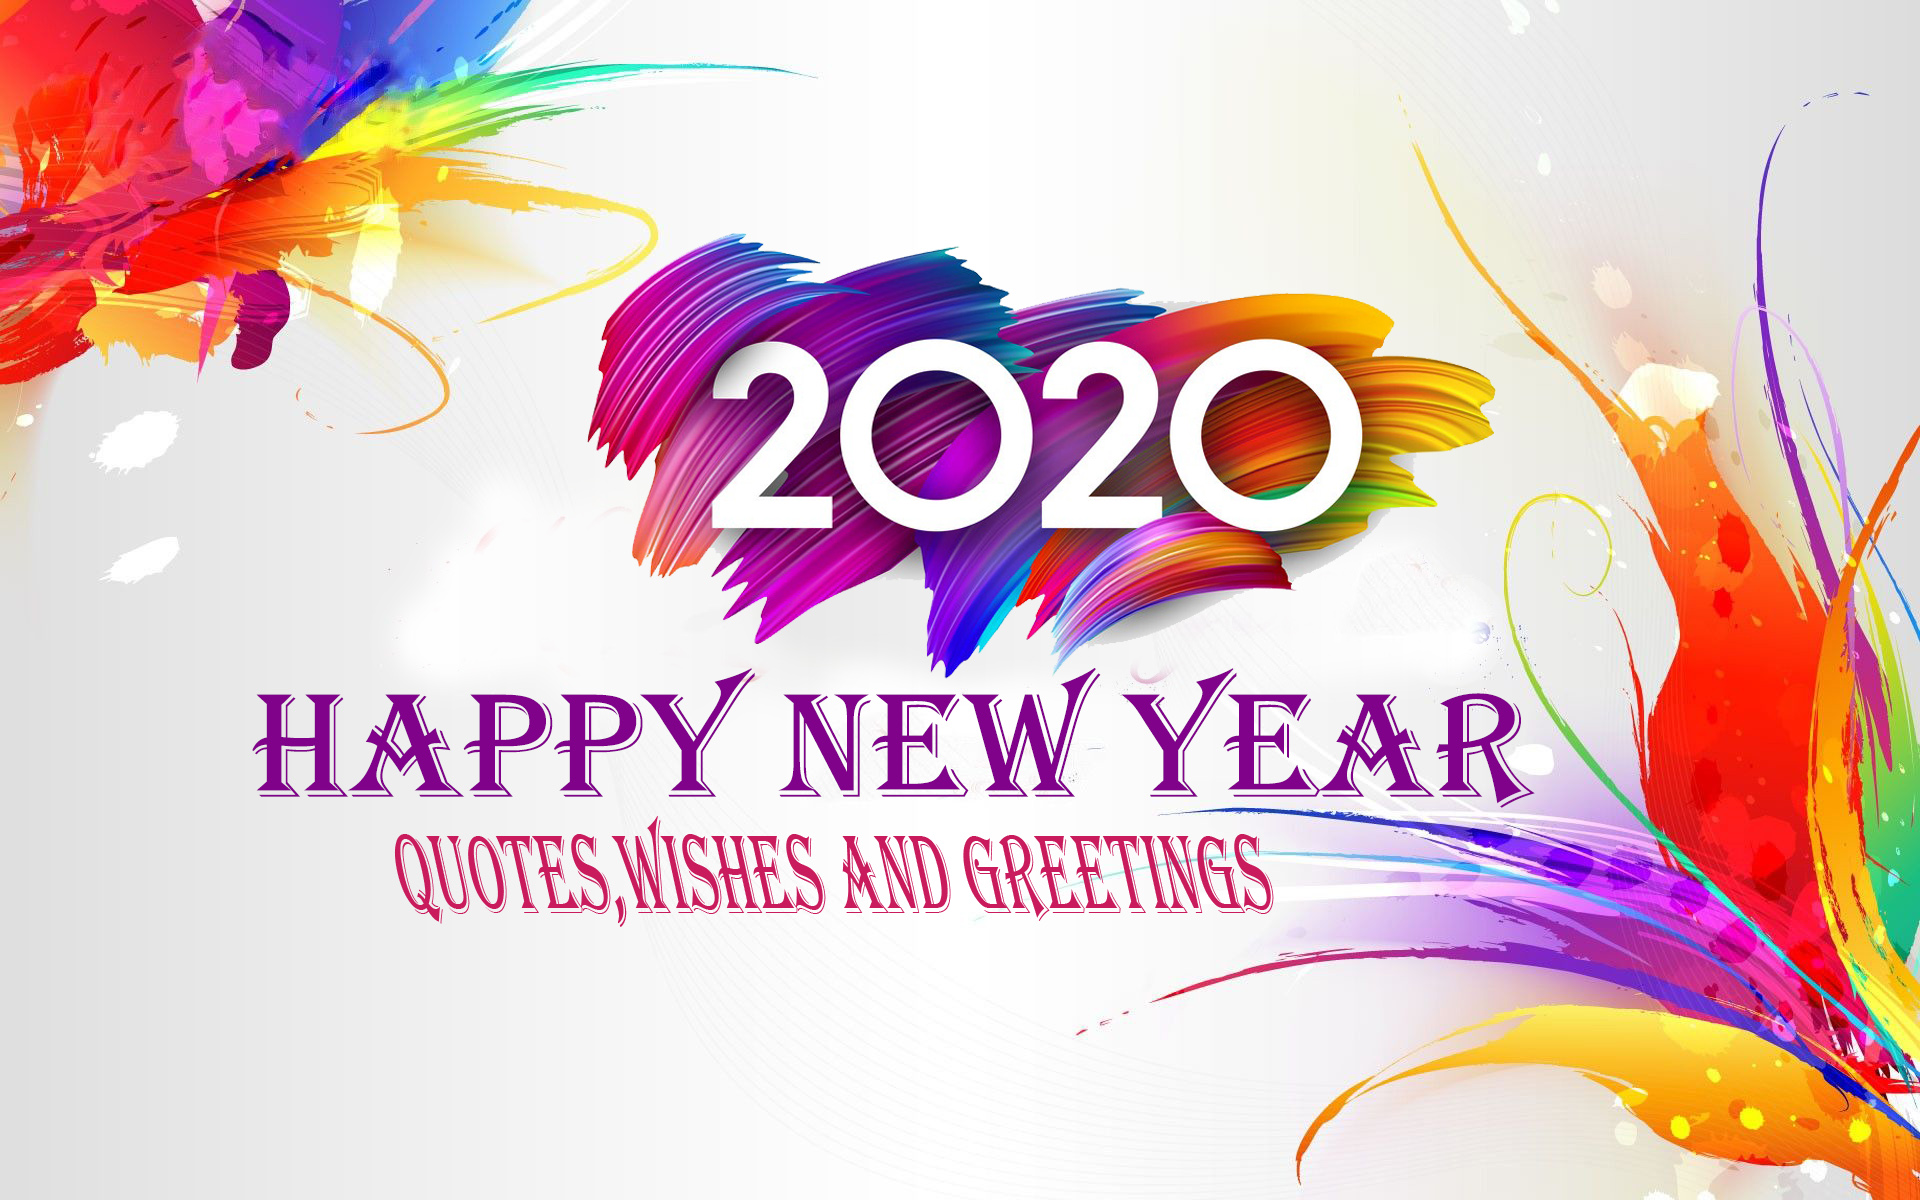 New Year Wishes 2020.Happy New Year 2020 Quotes Images Wishes And Greetings